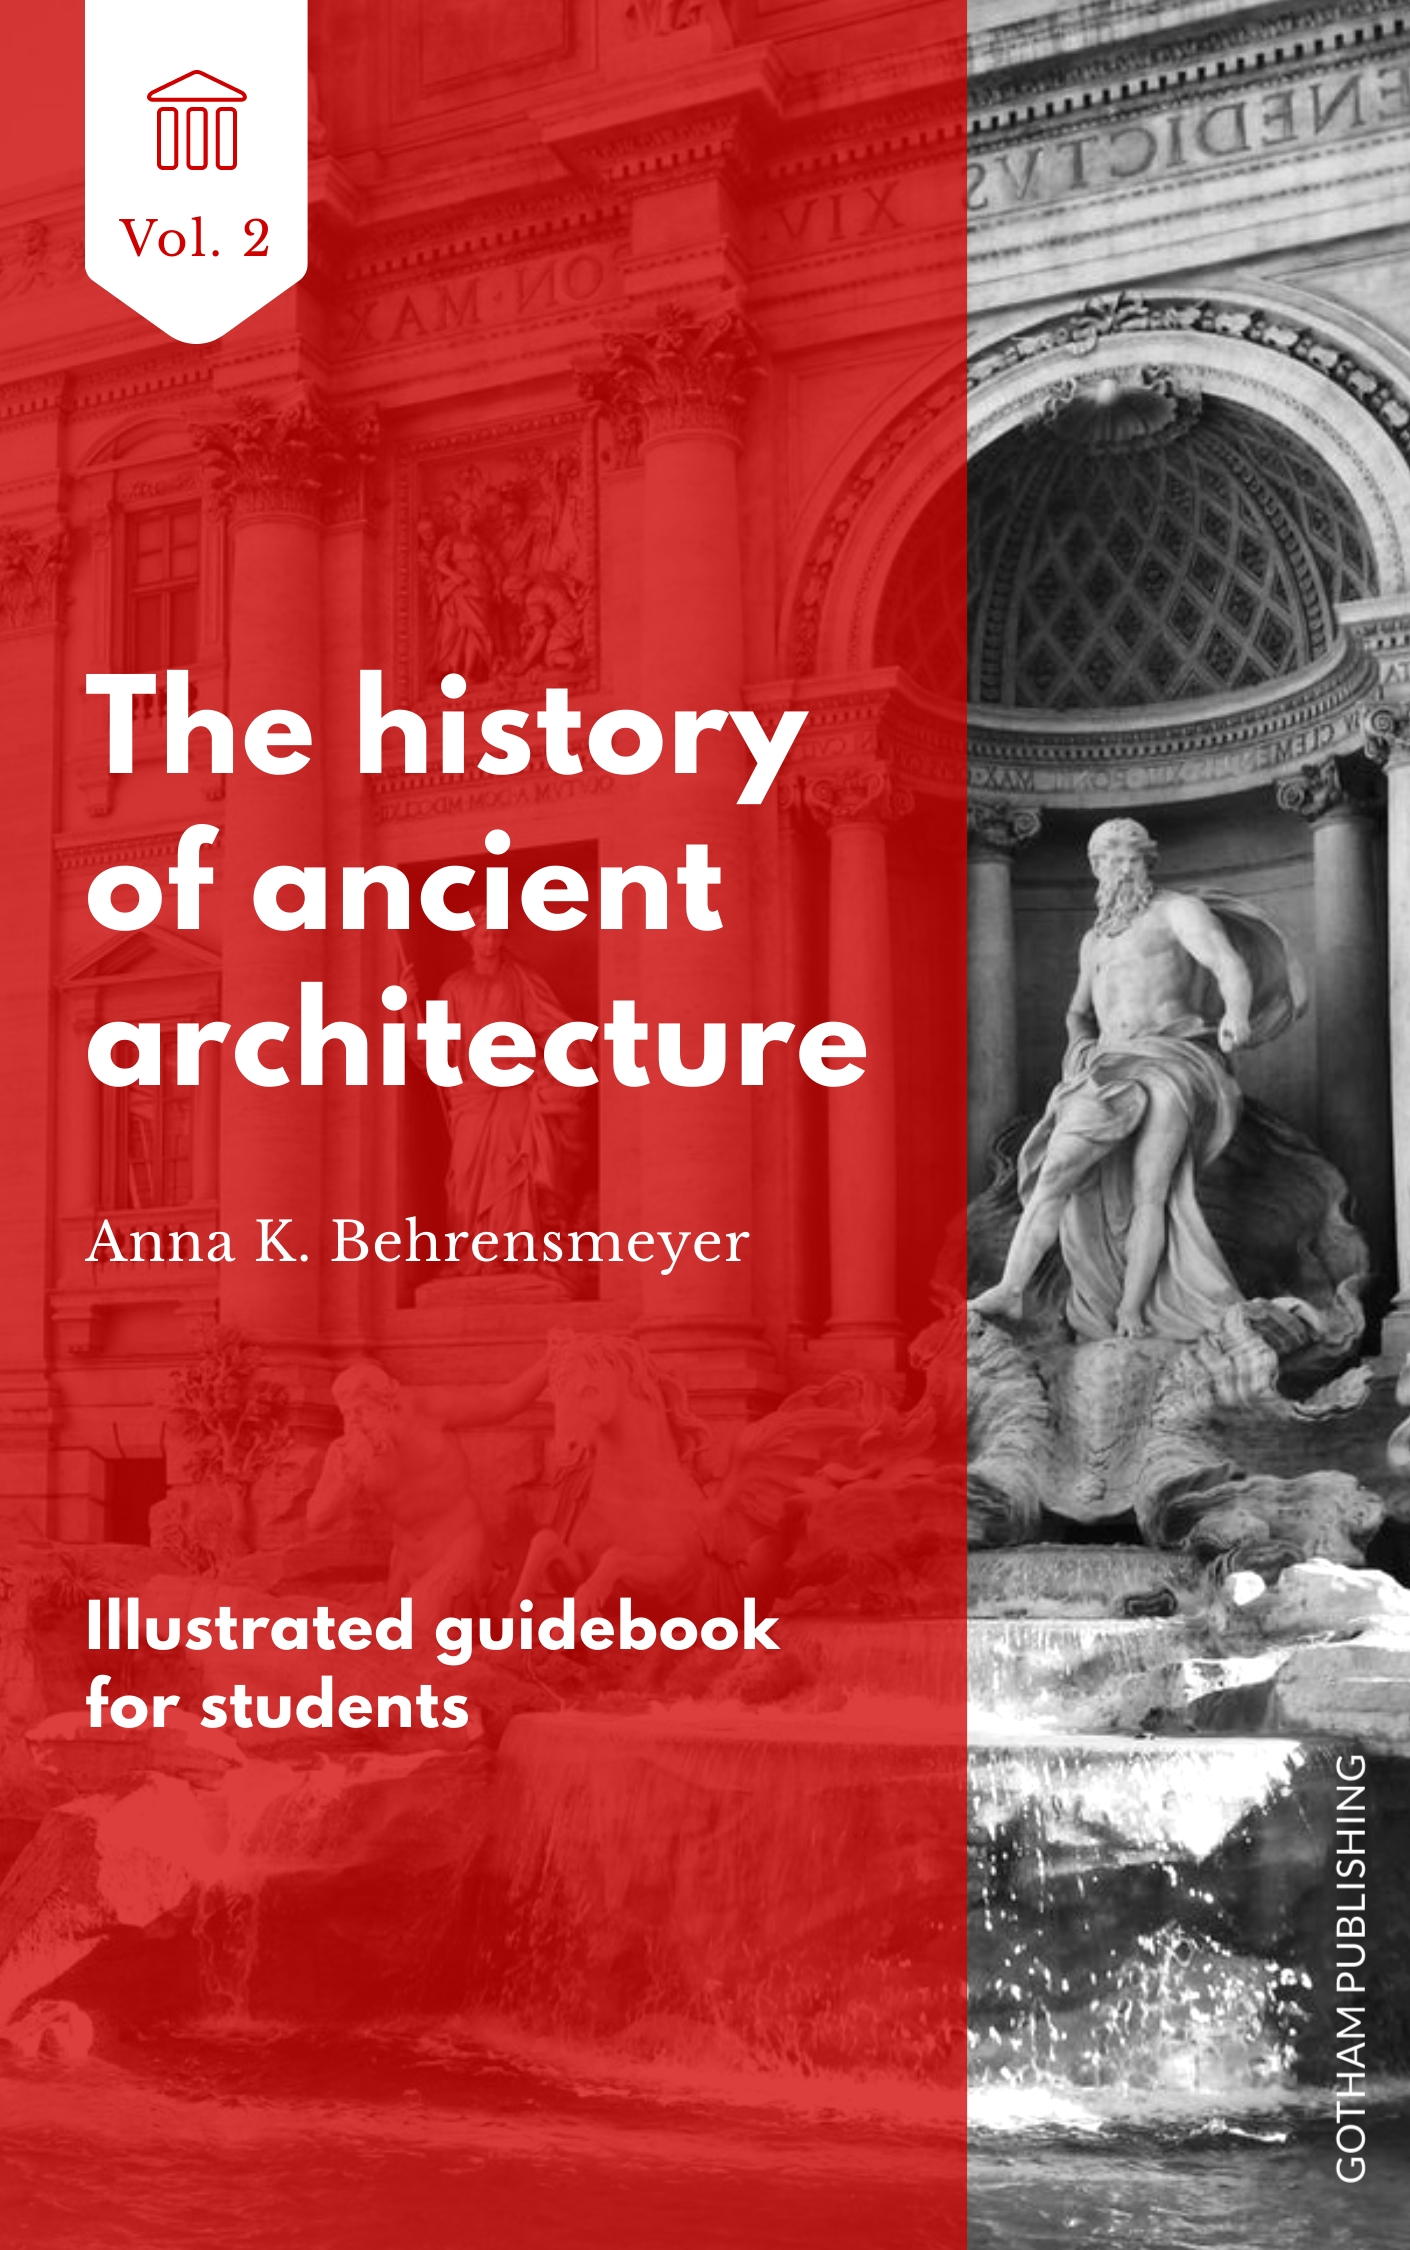 Ancient Architecture - Book Cover  Template